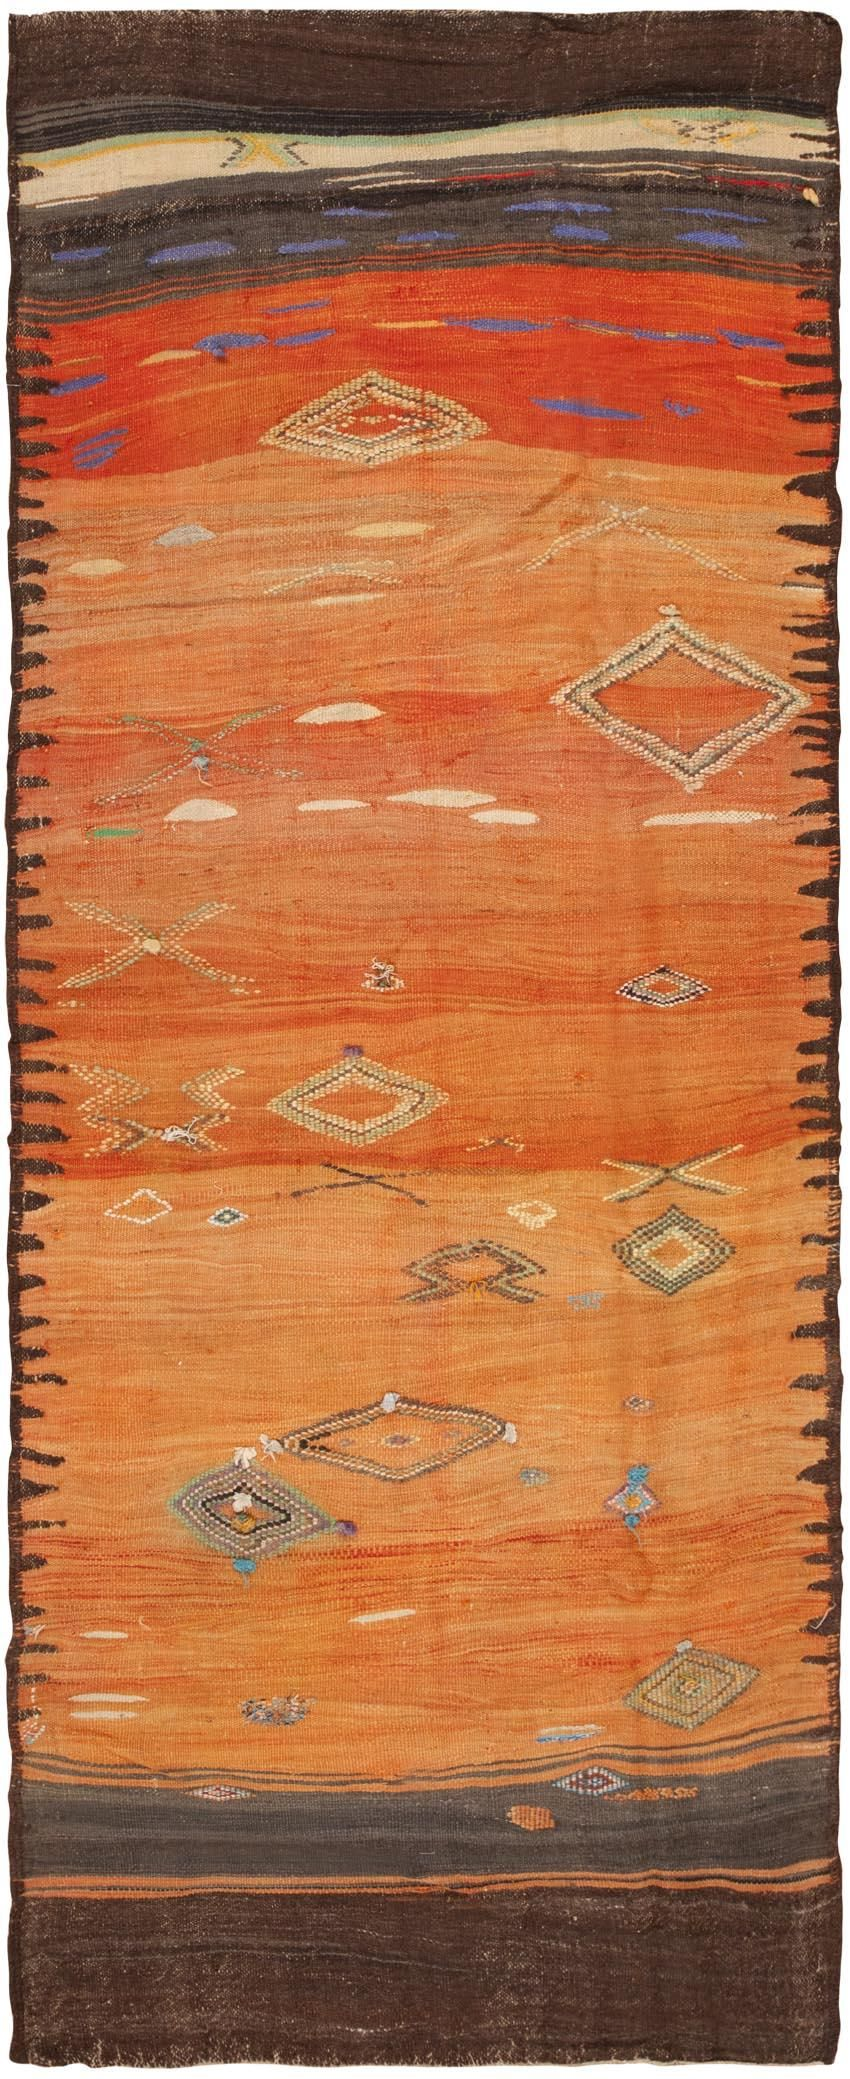 Vintage Moroccan Rugs For The Home Rugs Morrocan Rug